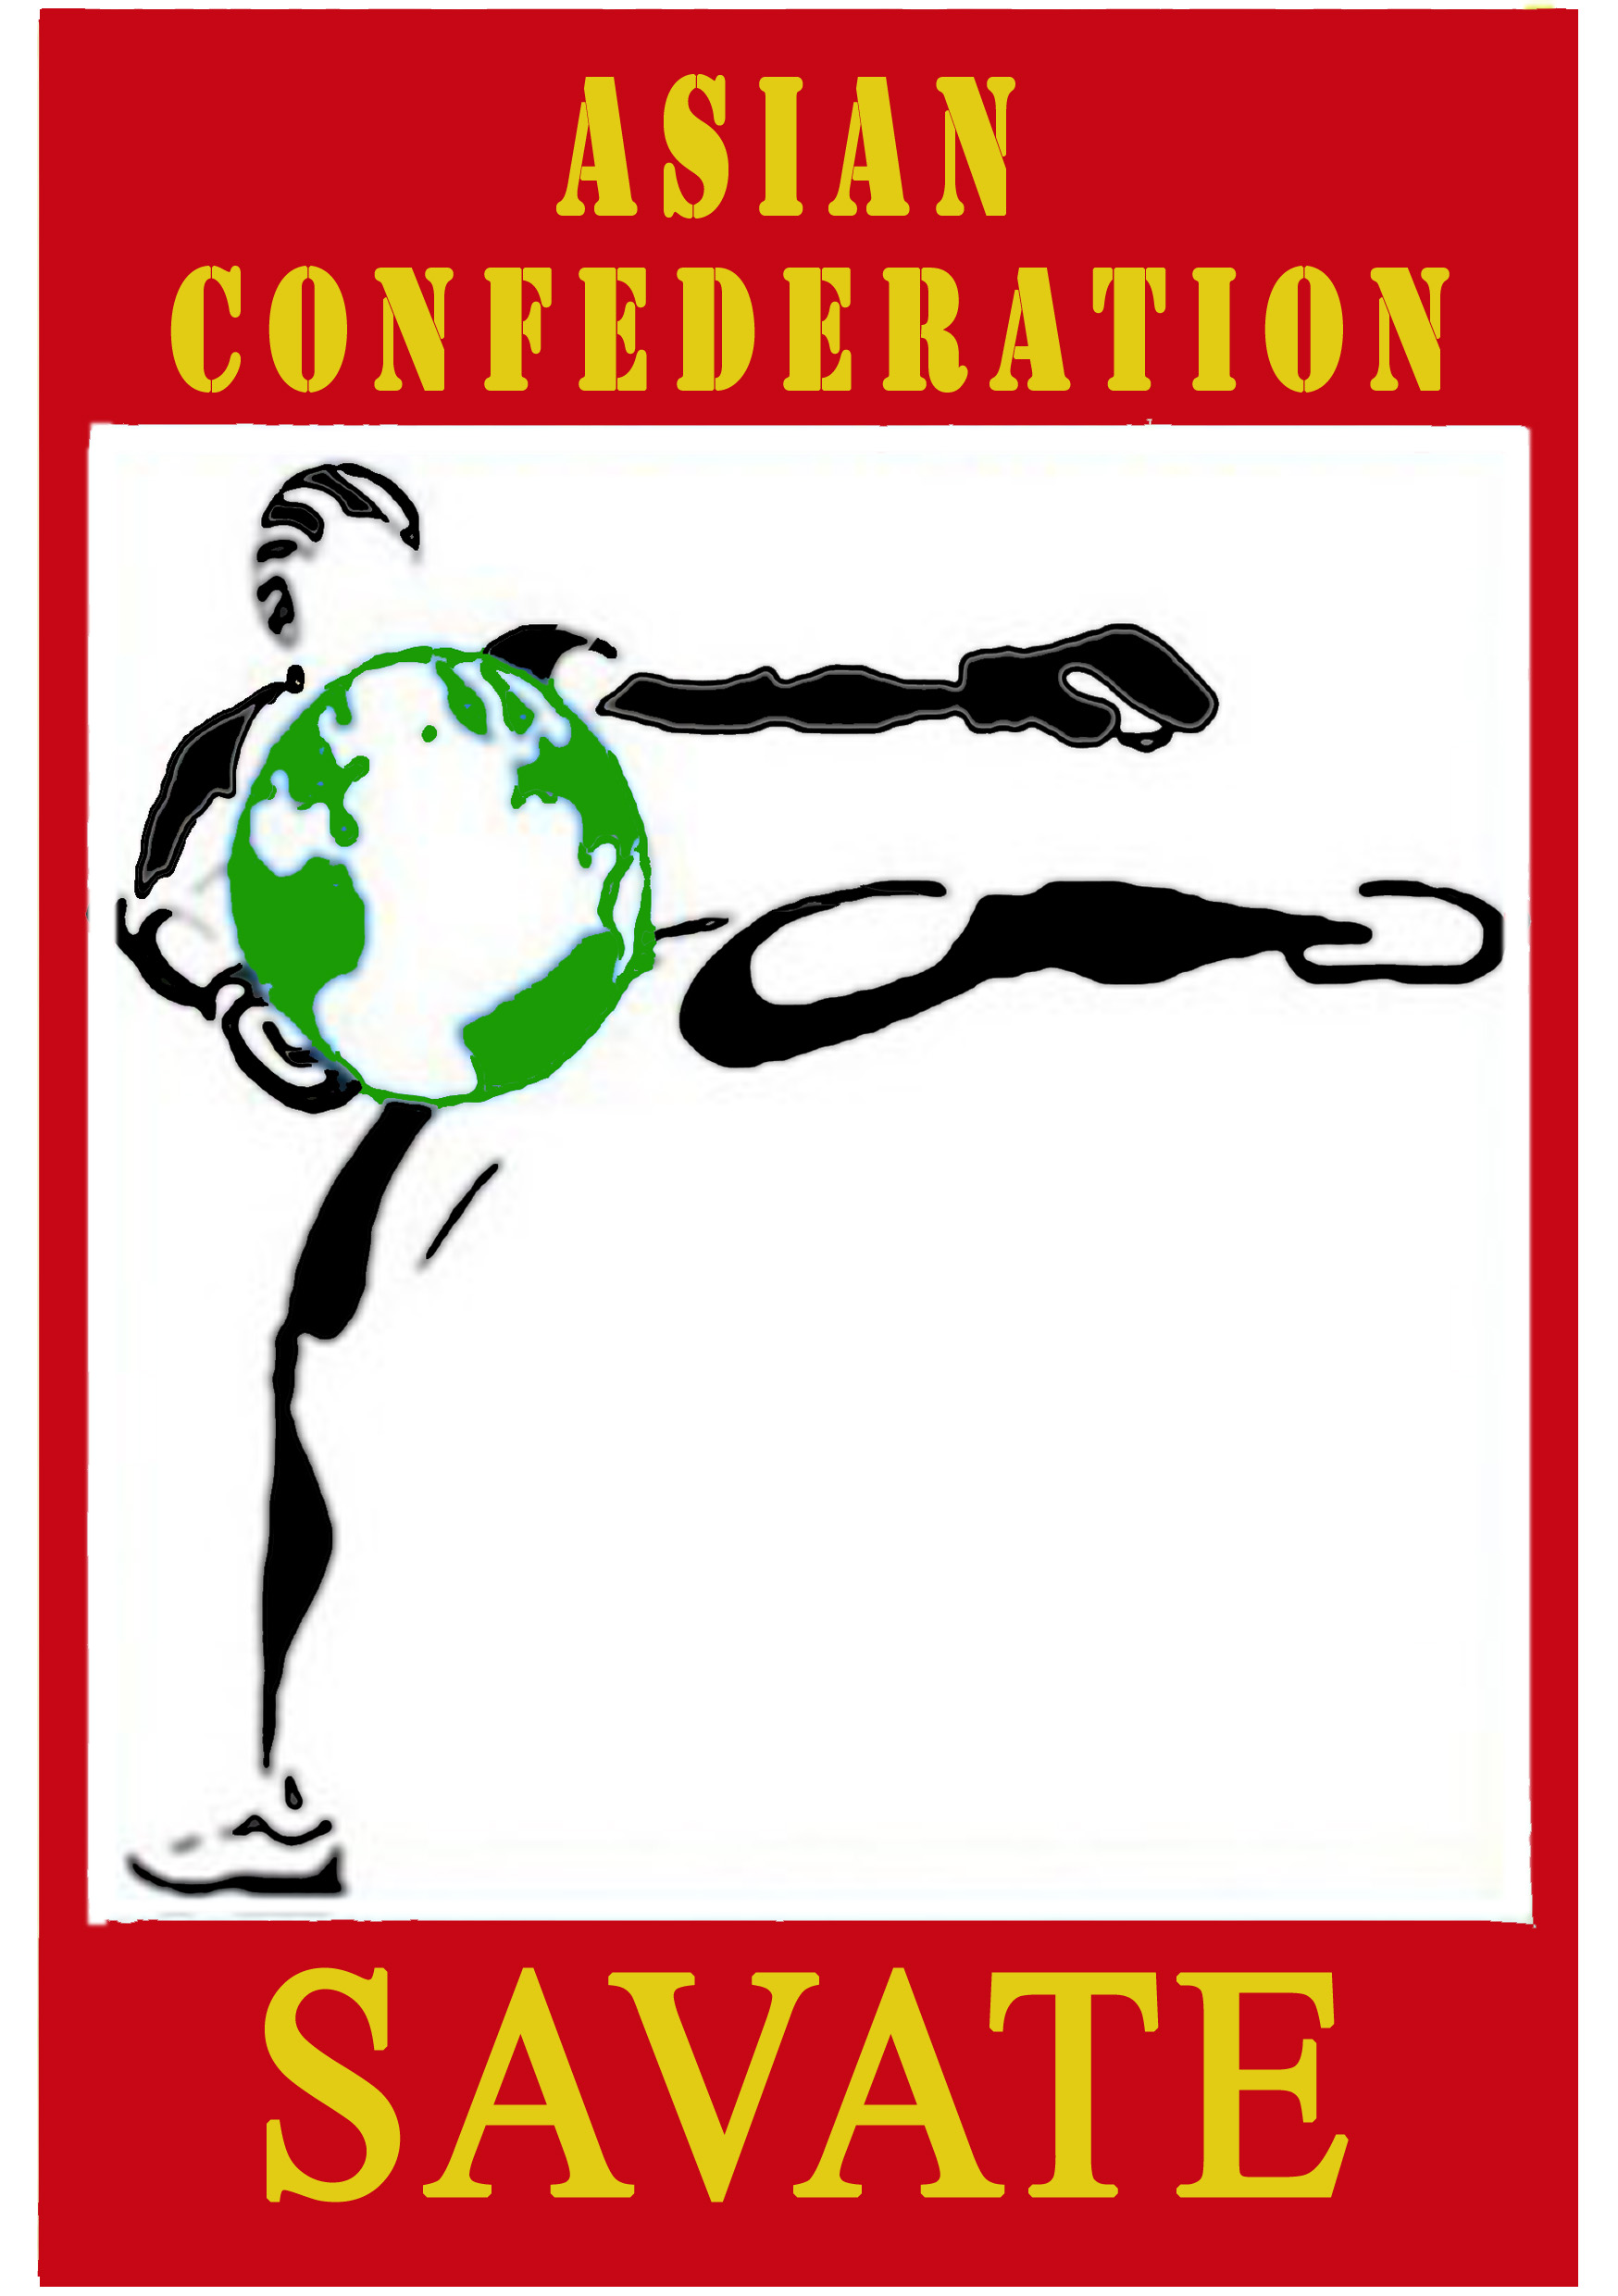 Asian Savate confederation logo